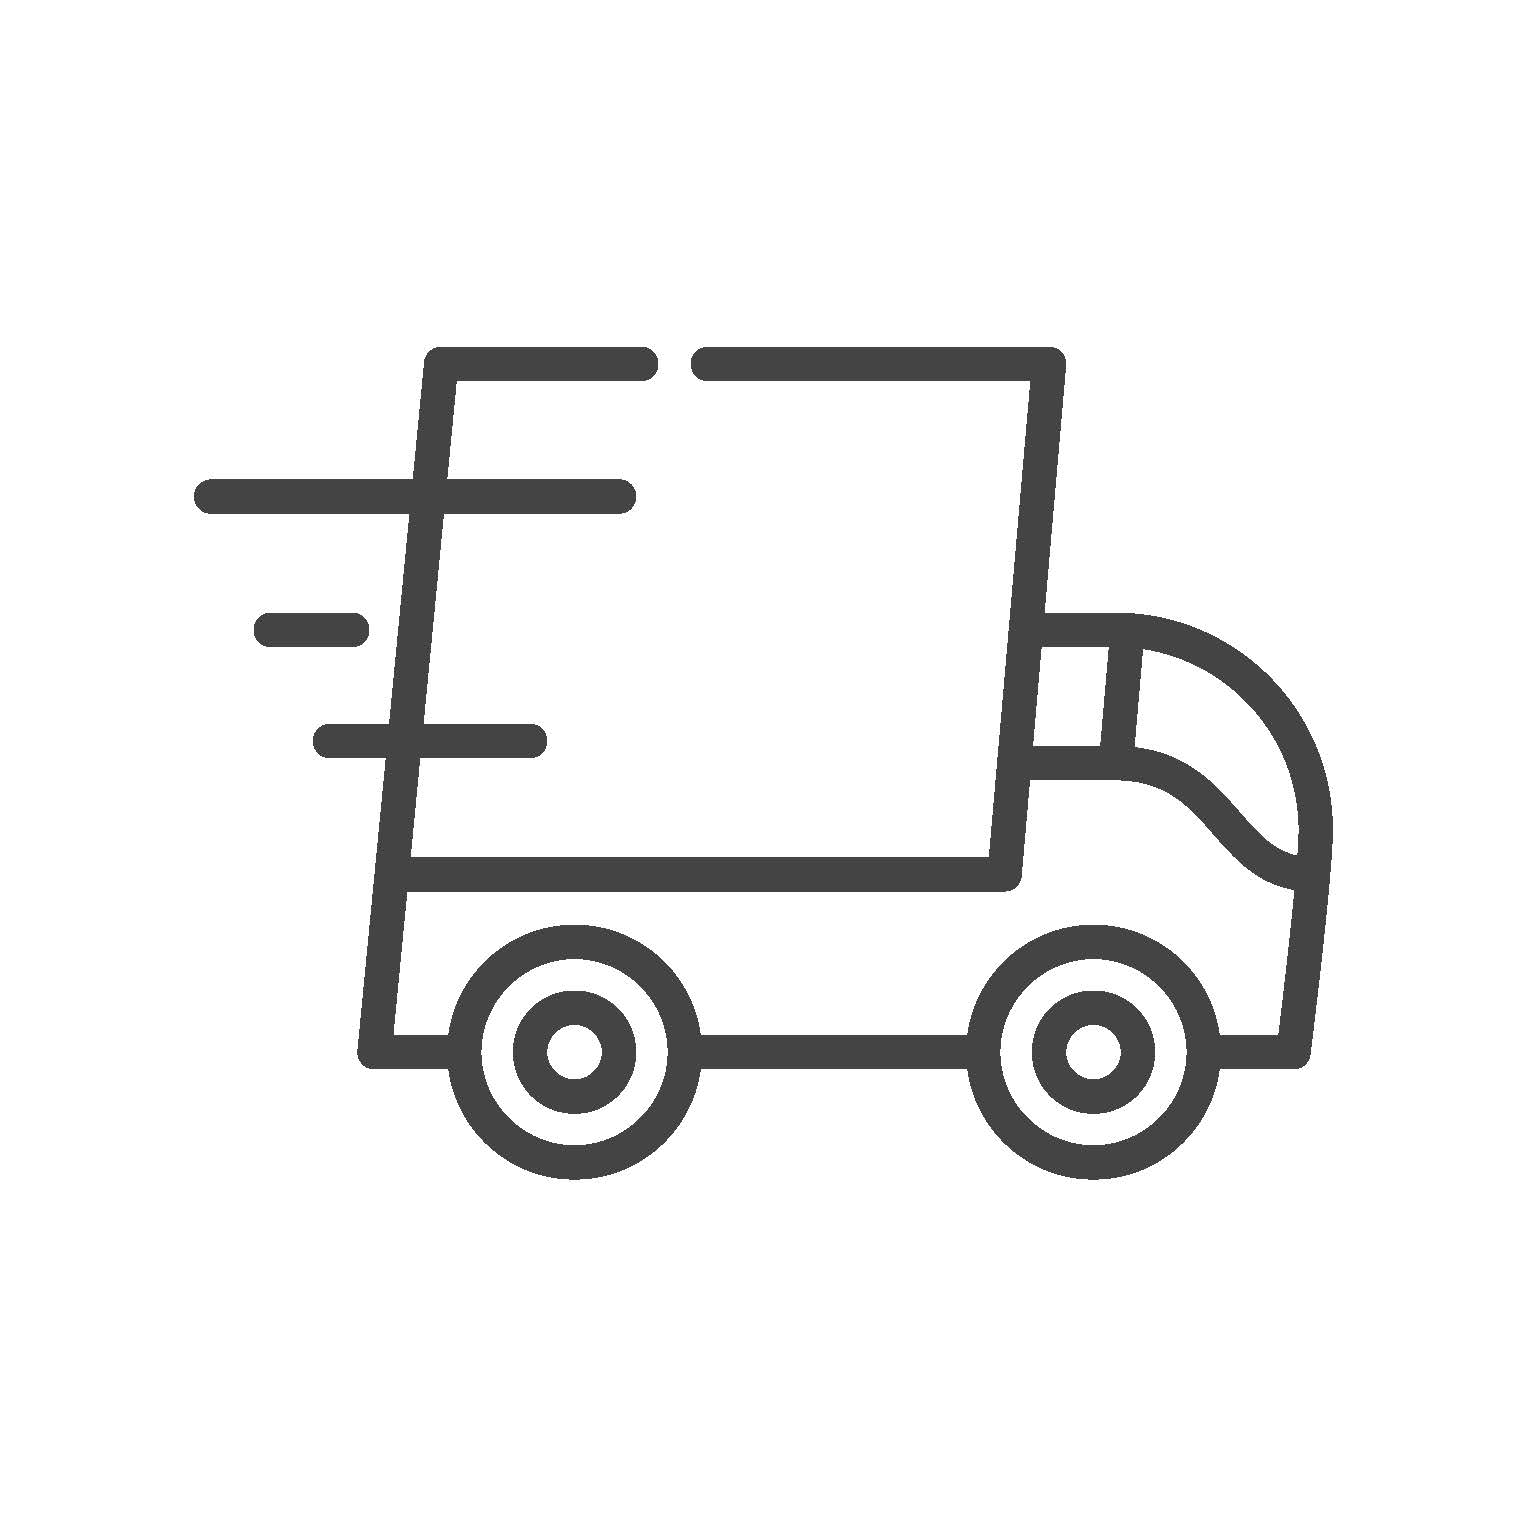 Delivery Truck icon design by Freepik from Flaticon